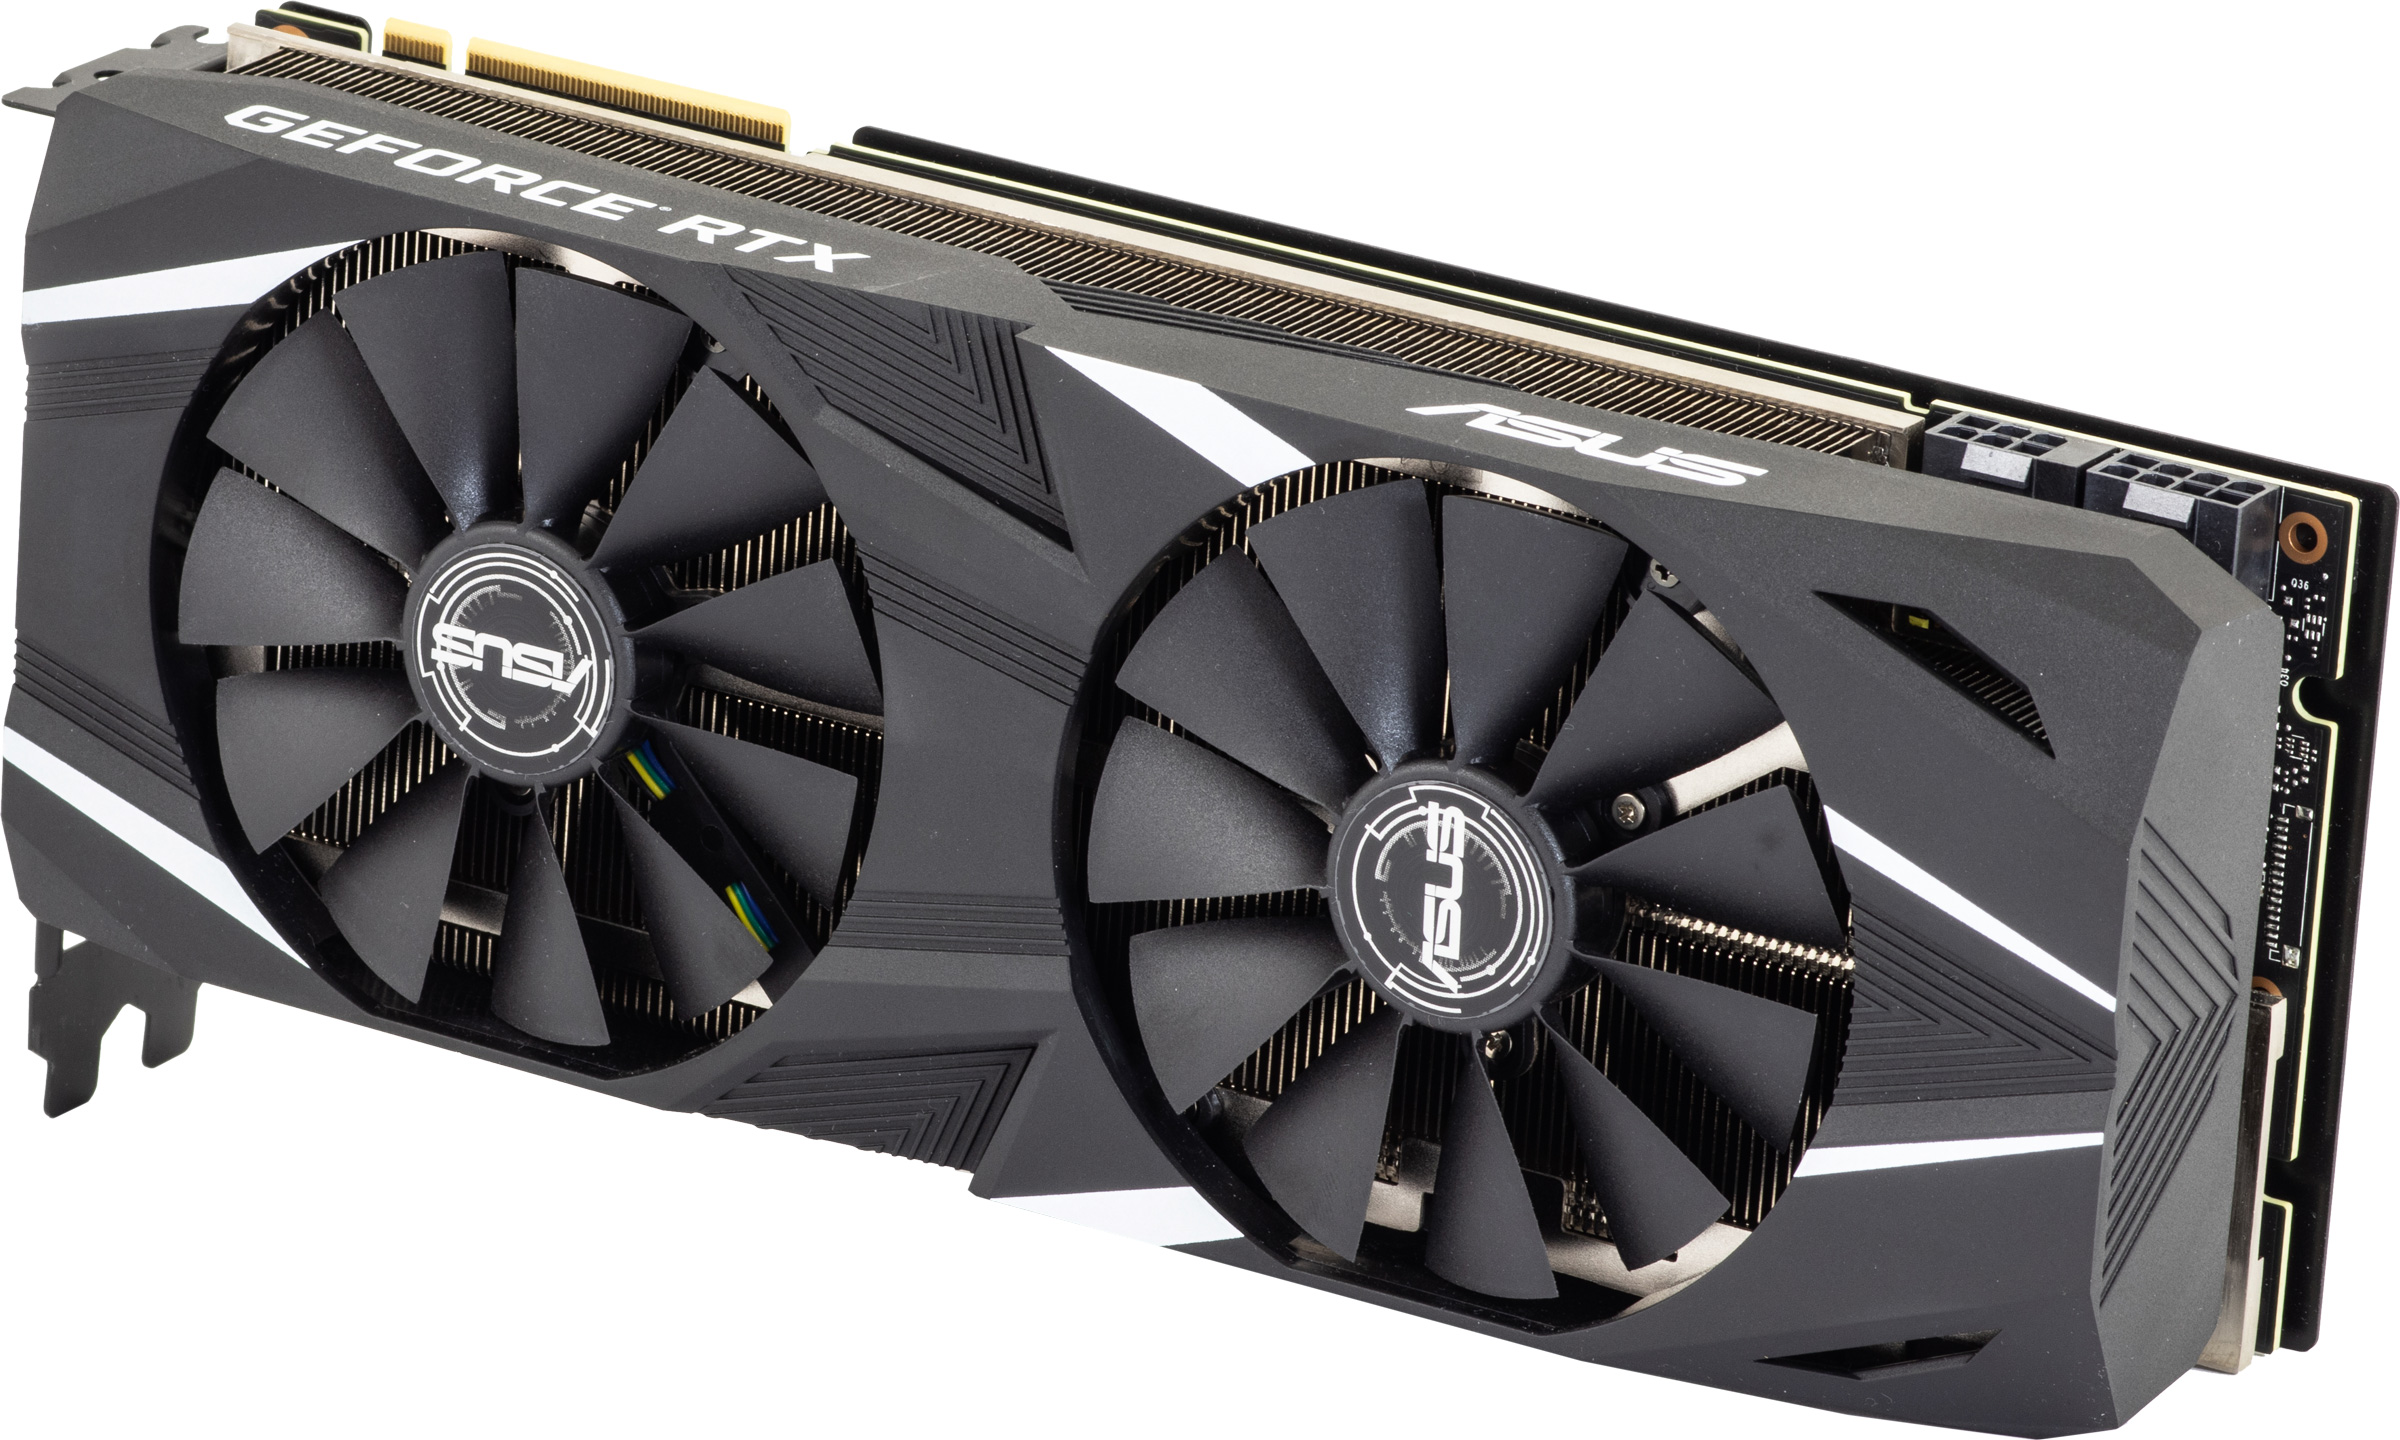 ASUS RTX 2080 1